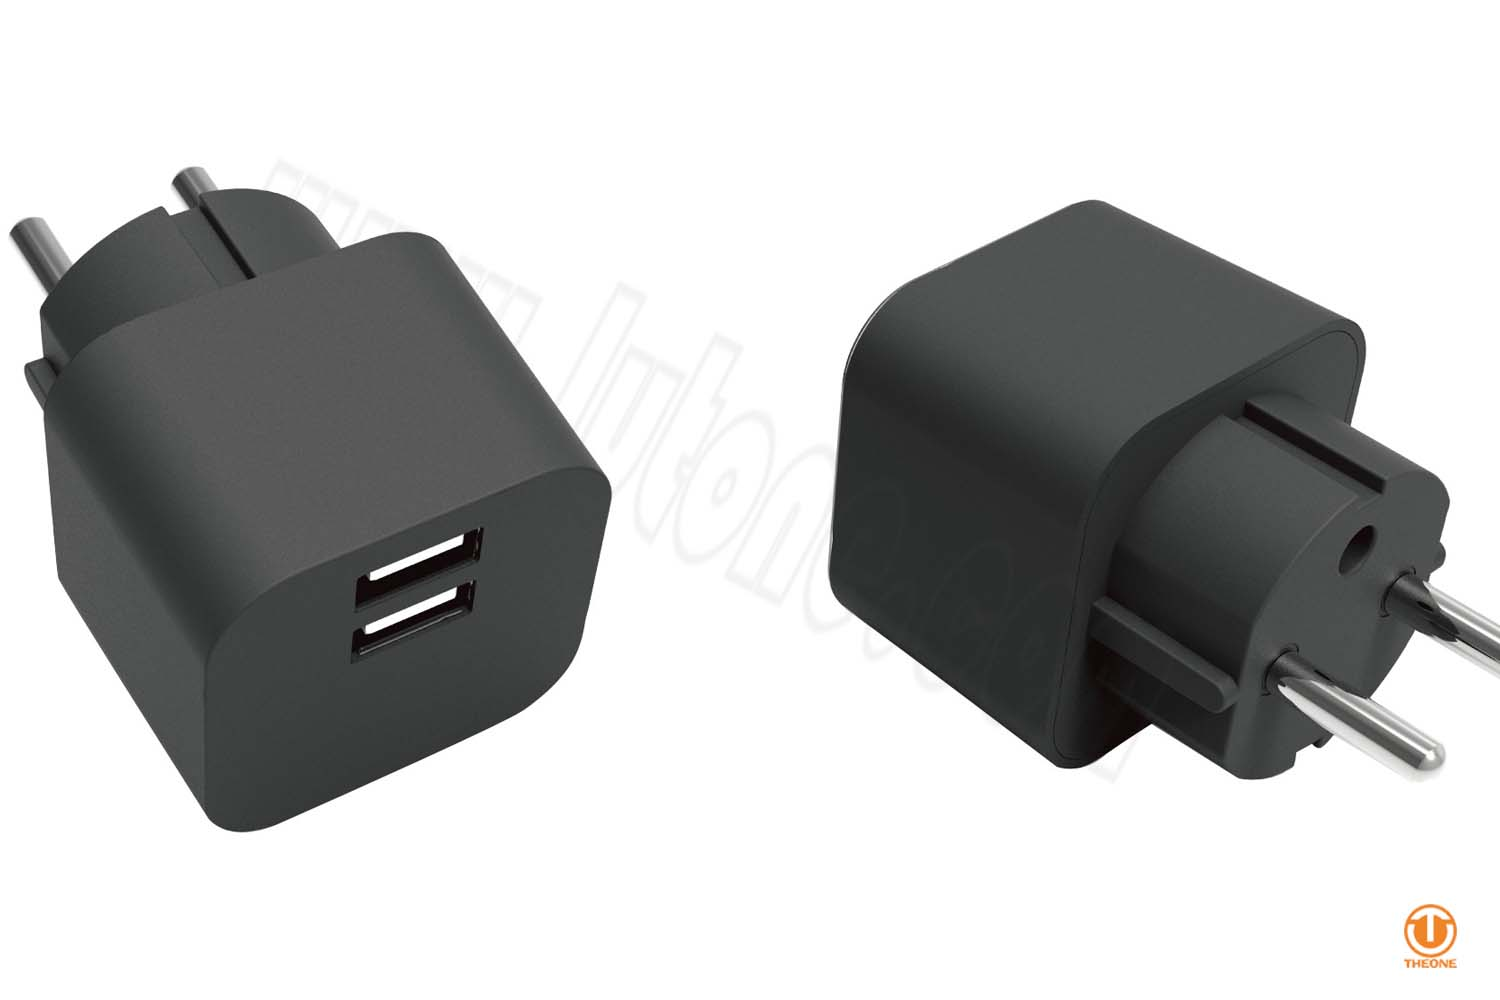 tc03b2-1 dual usb wall charger